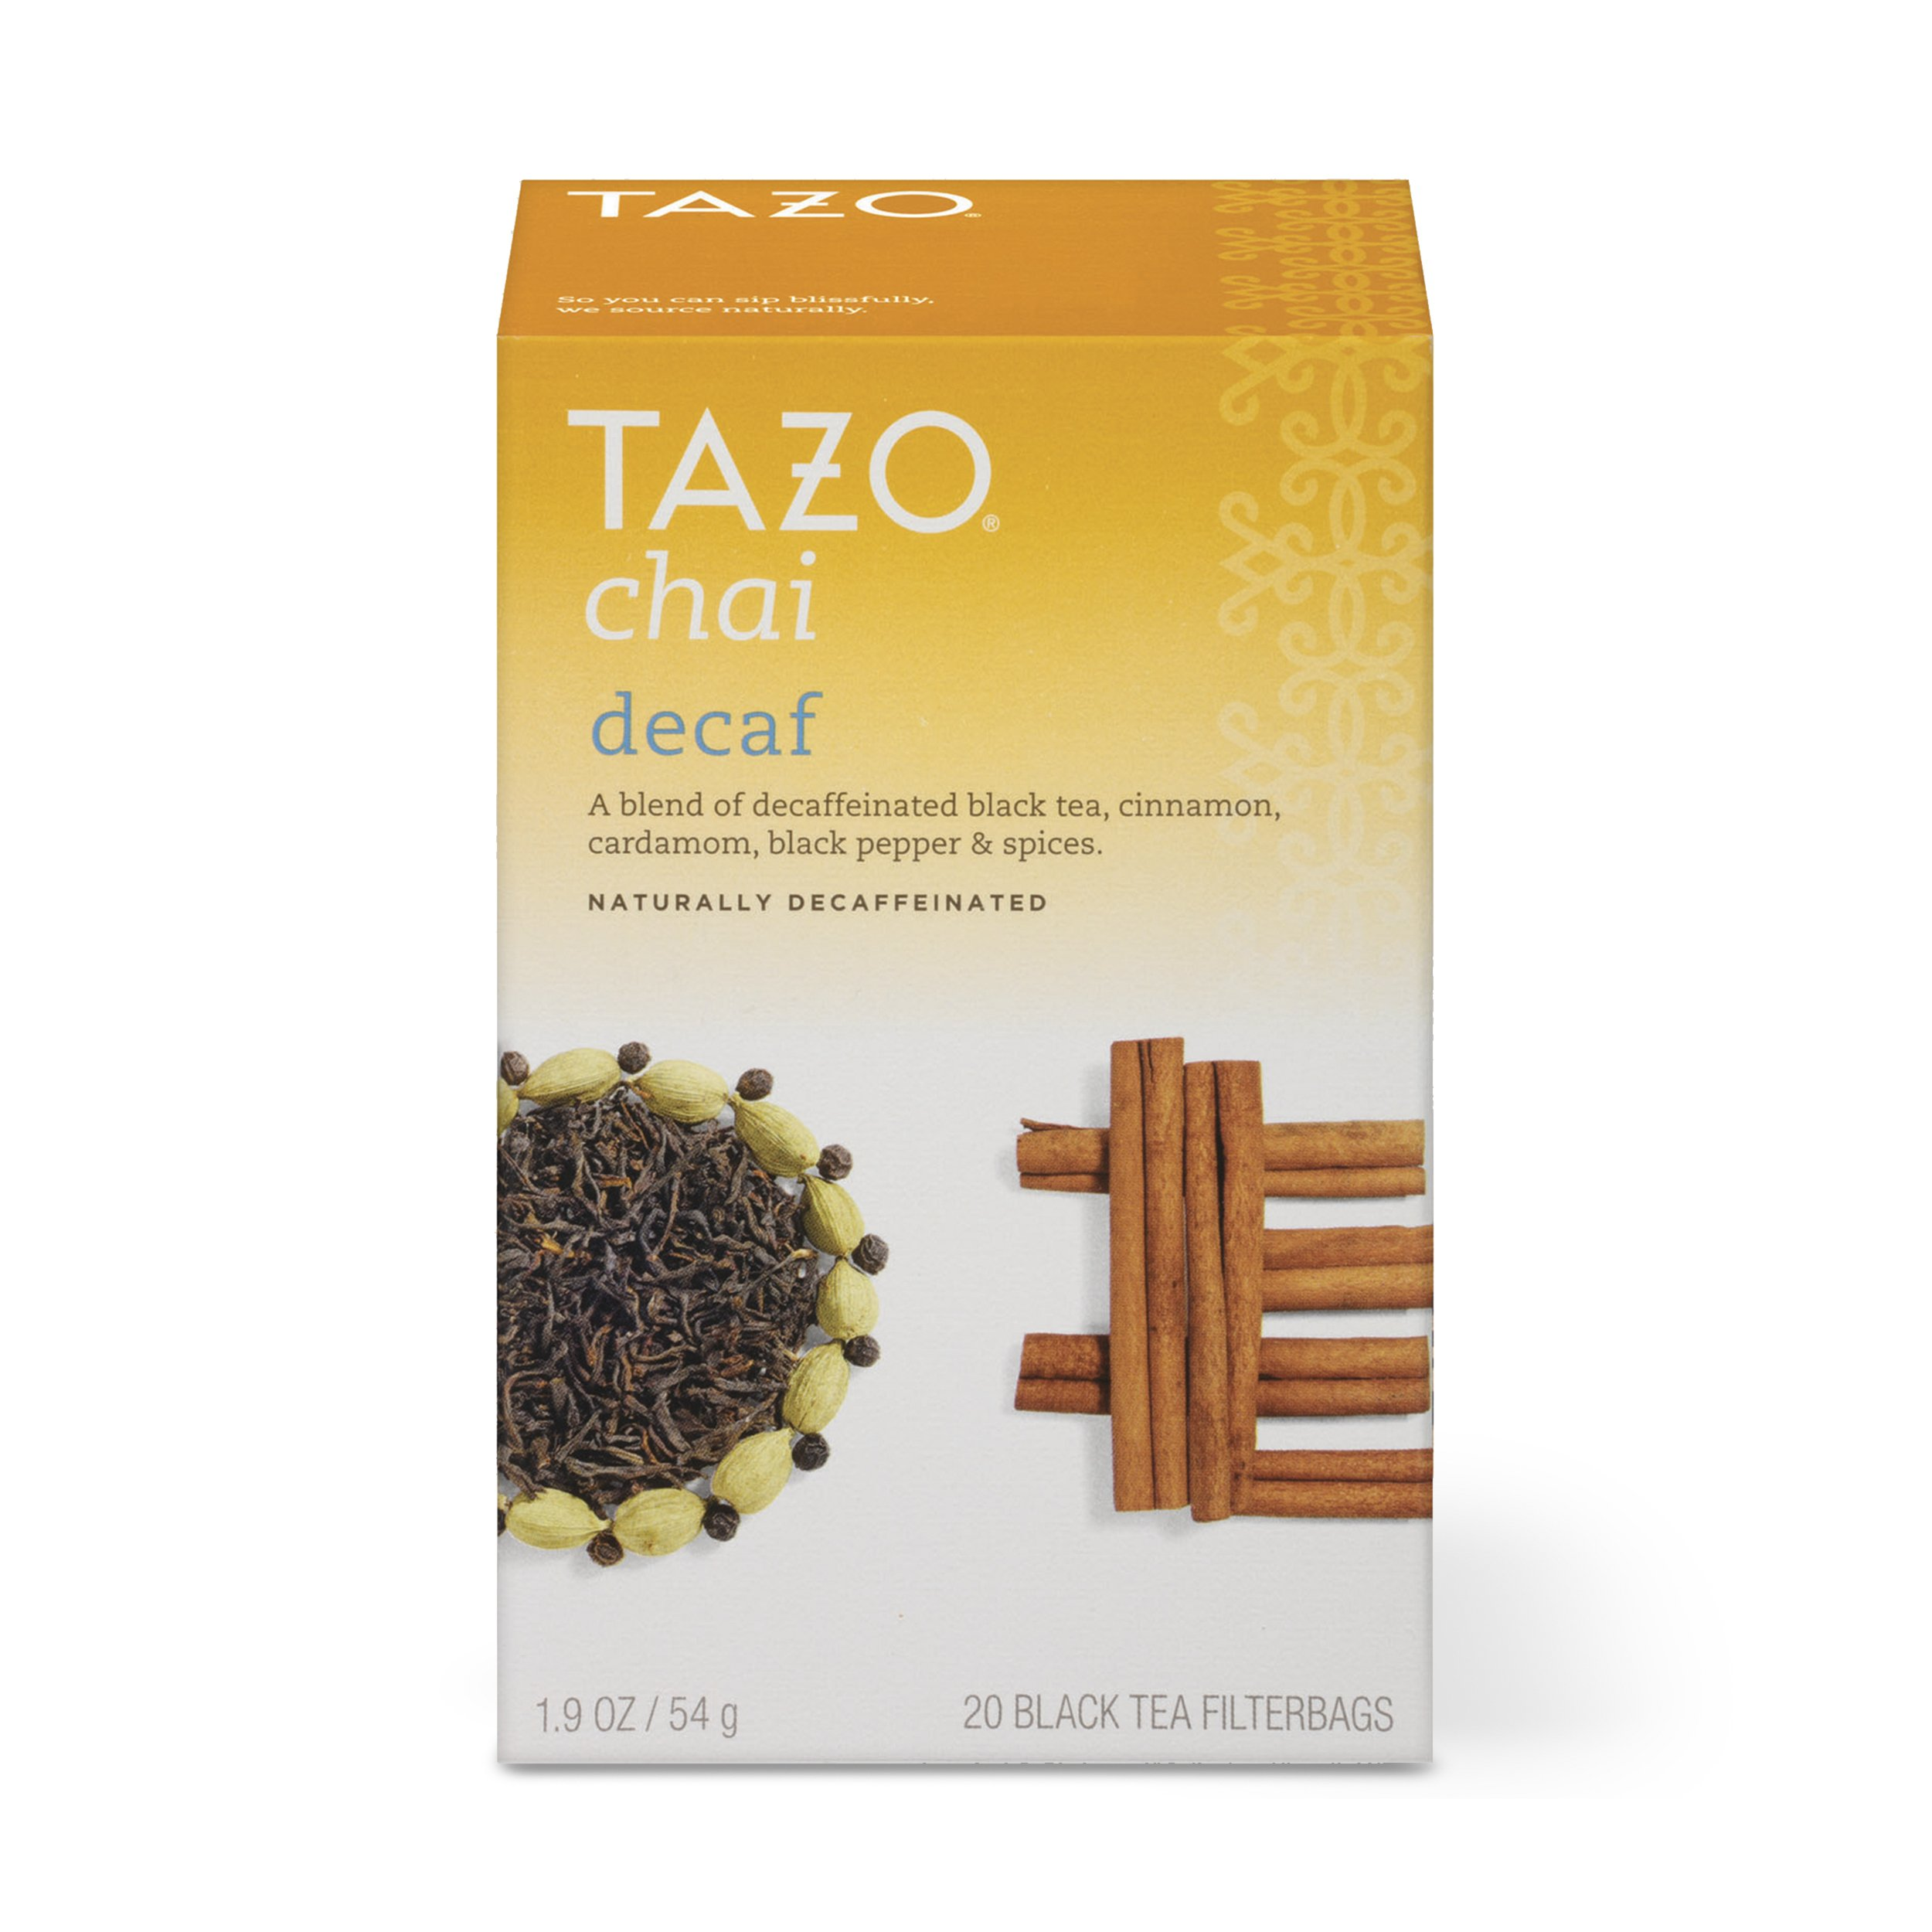 Tazo Decaf Chai Black Tea Filterbags, 20 Count (Pack of 6)